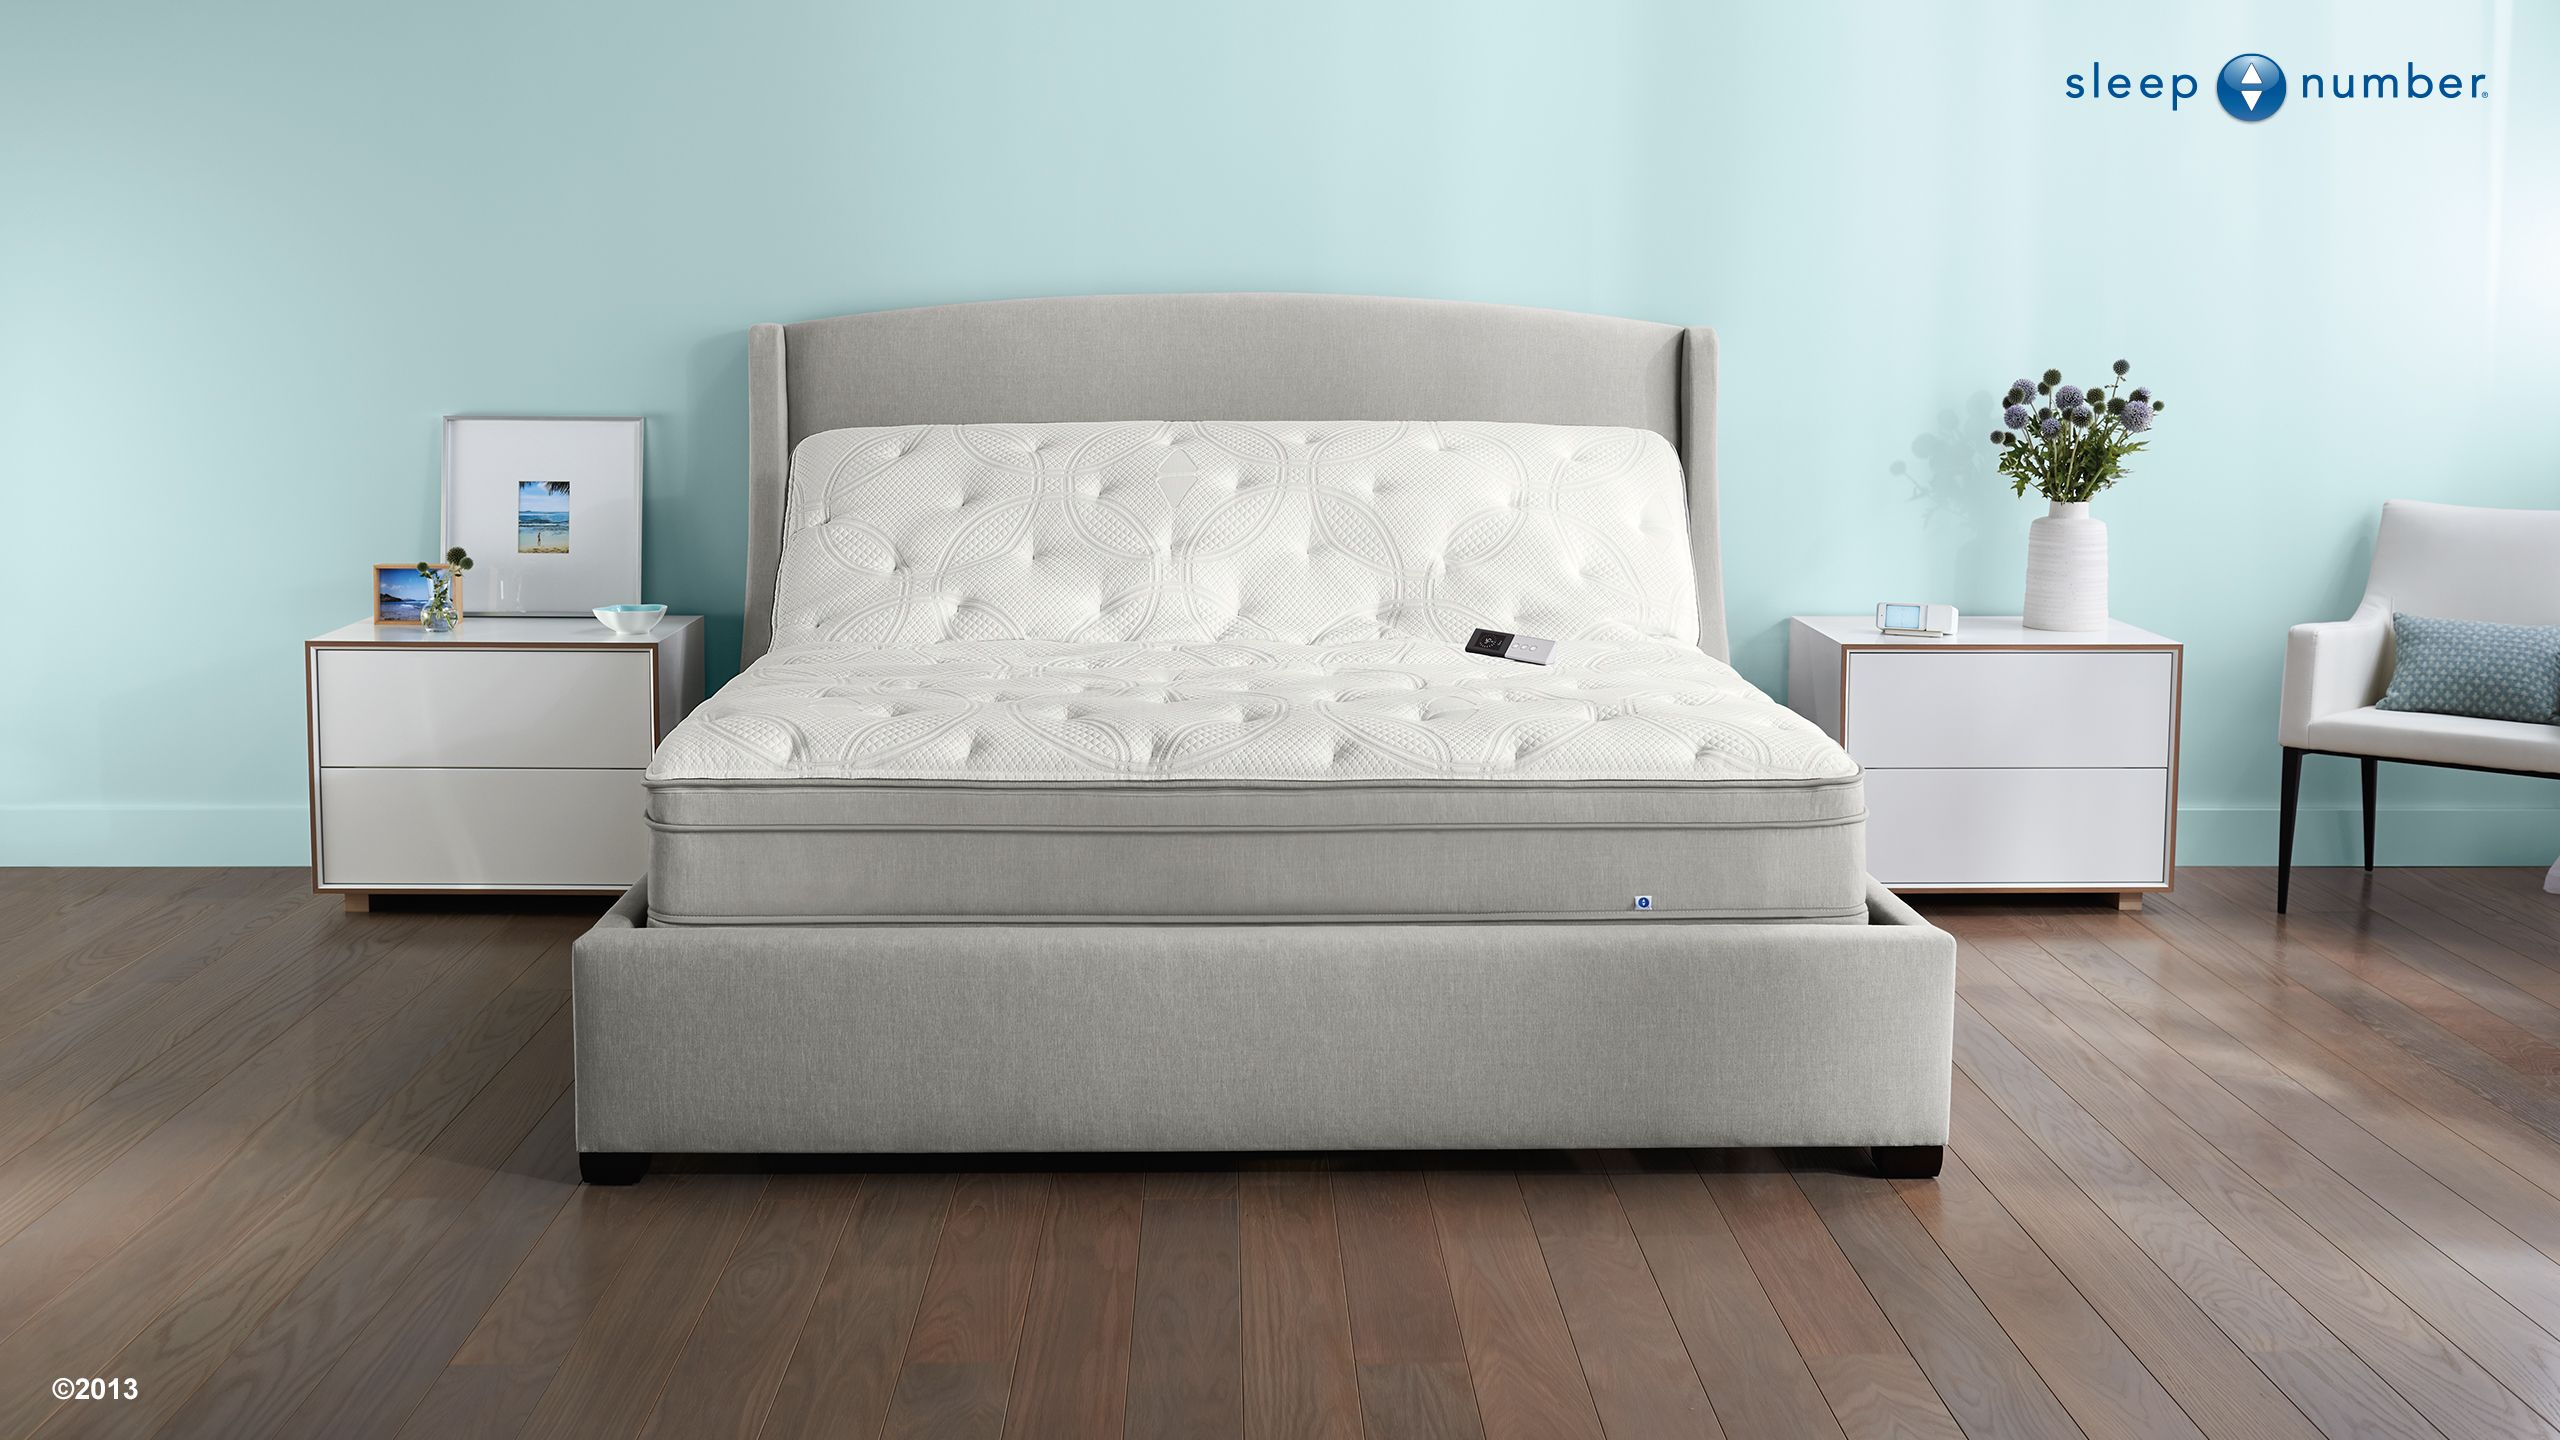 p5 360 Bed FlexTop King Smart bed, Bed, Bed mattress